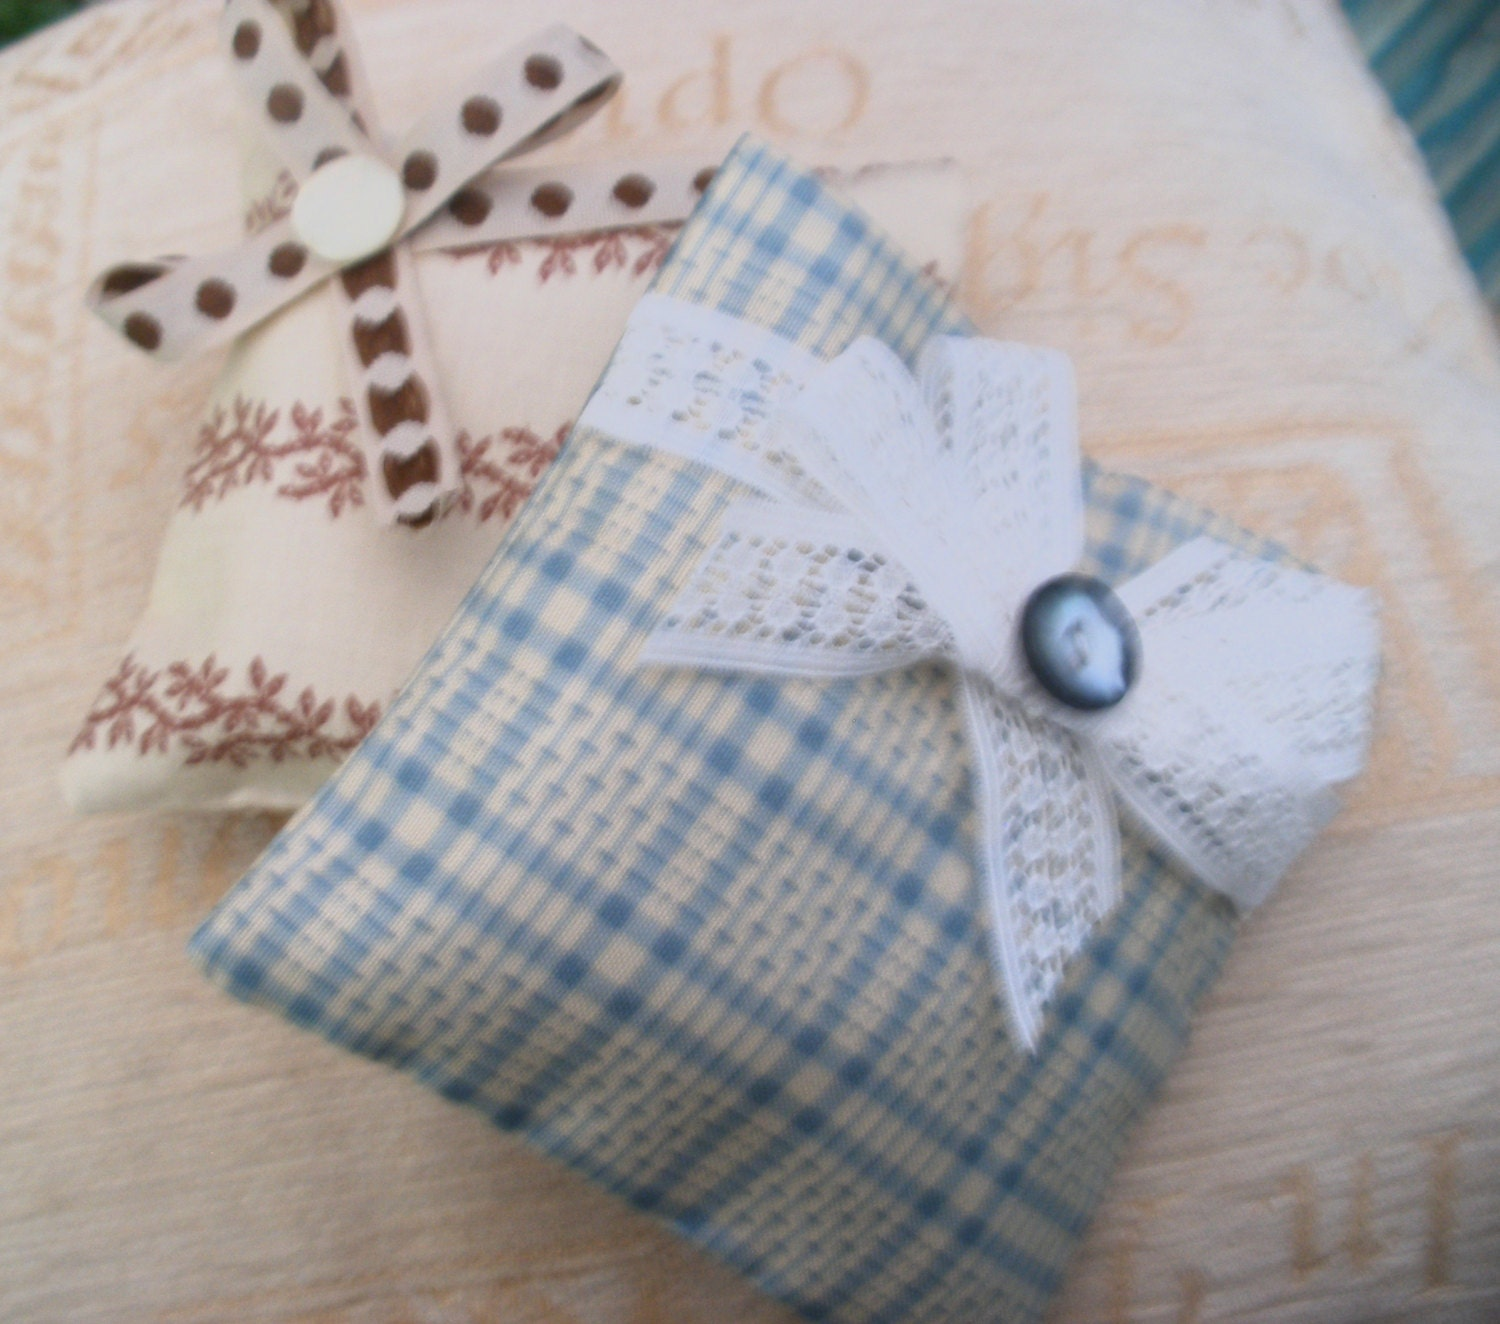 Lavender Bags Dried Lavender Cotton Sachet Ribbon